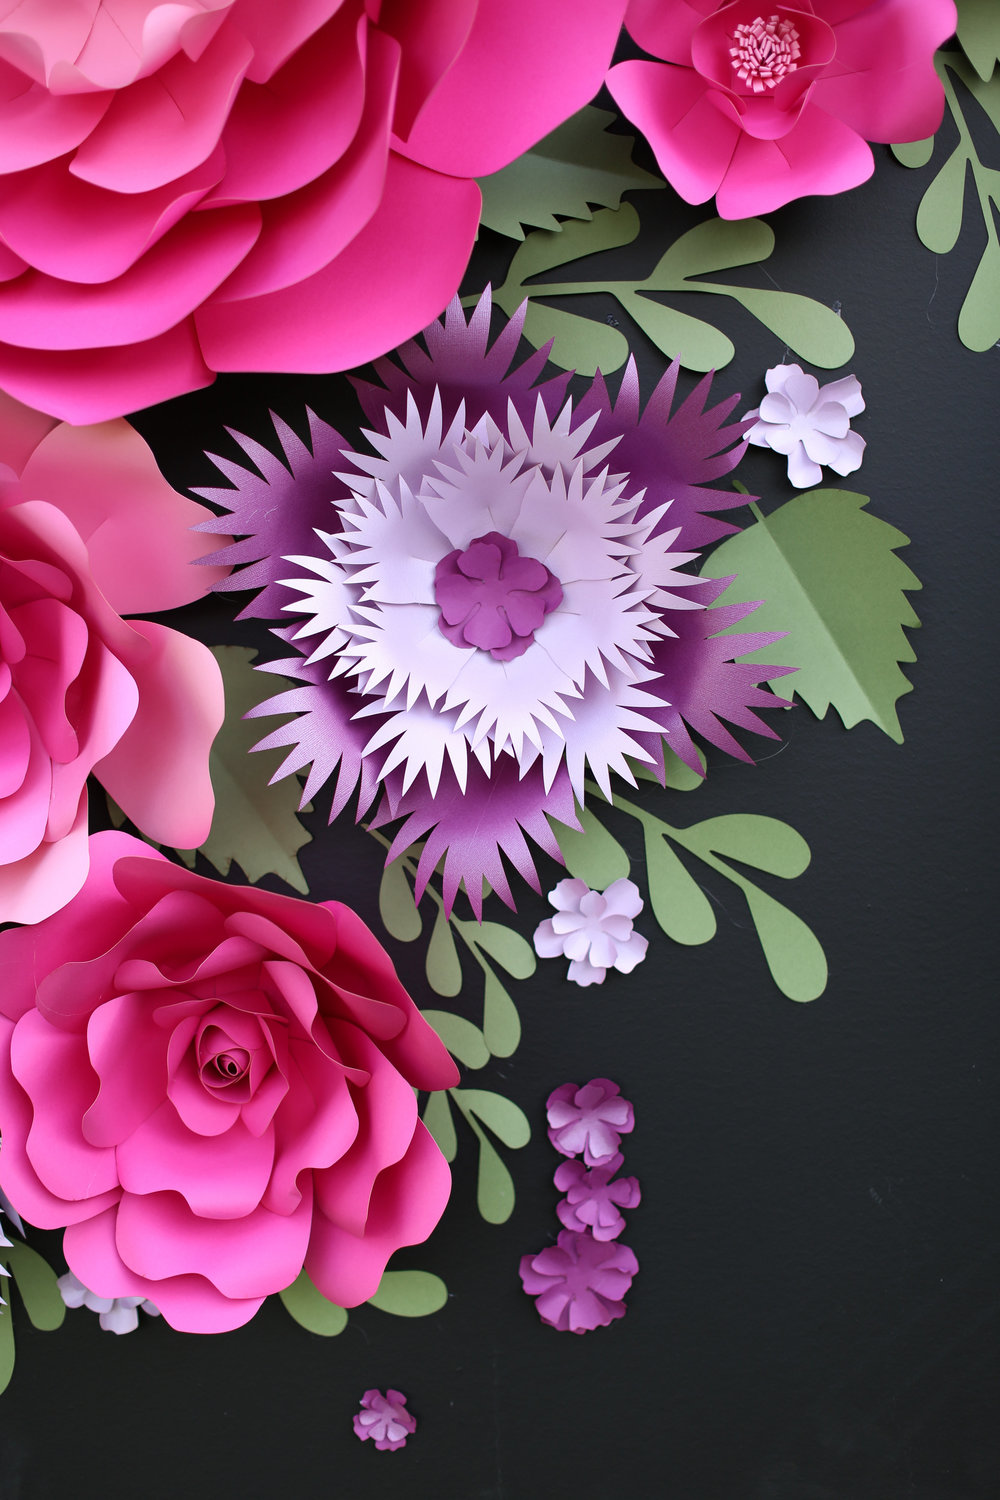 Chalkboard_Backdrop_Giant Paper Flowers_ backdrop display_ dessert table backdrop _ Kate Spade inspired dessert table decor_ hot pink and purple flowers for backdrop _ chalkboard backdrop_unique 14.jpg